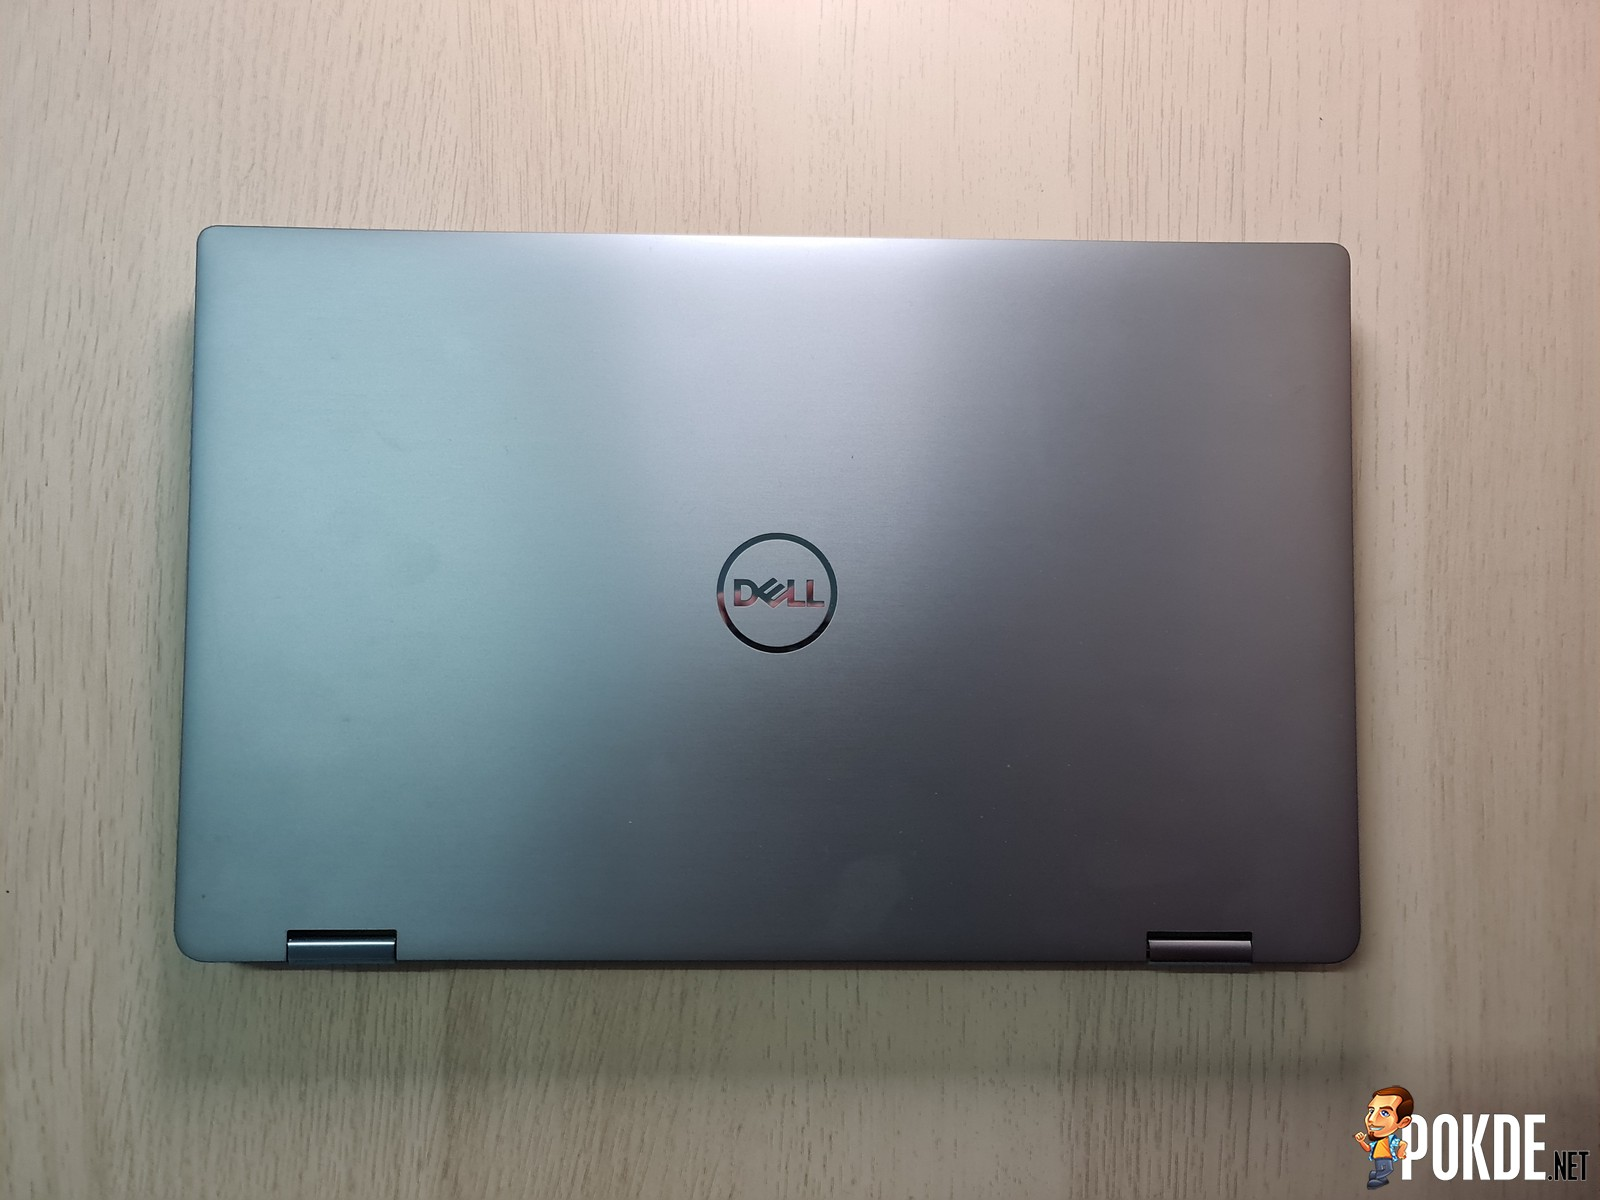 Dell Latitude 9510 2-in-1 Review - When Laptops Truly Mean Business 25